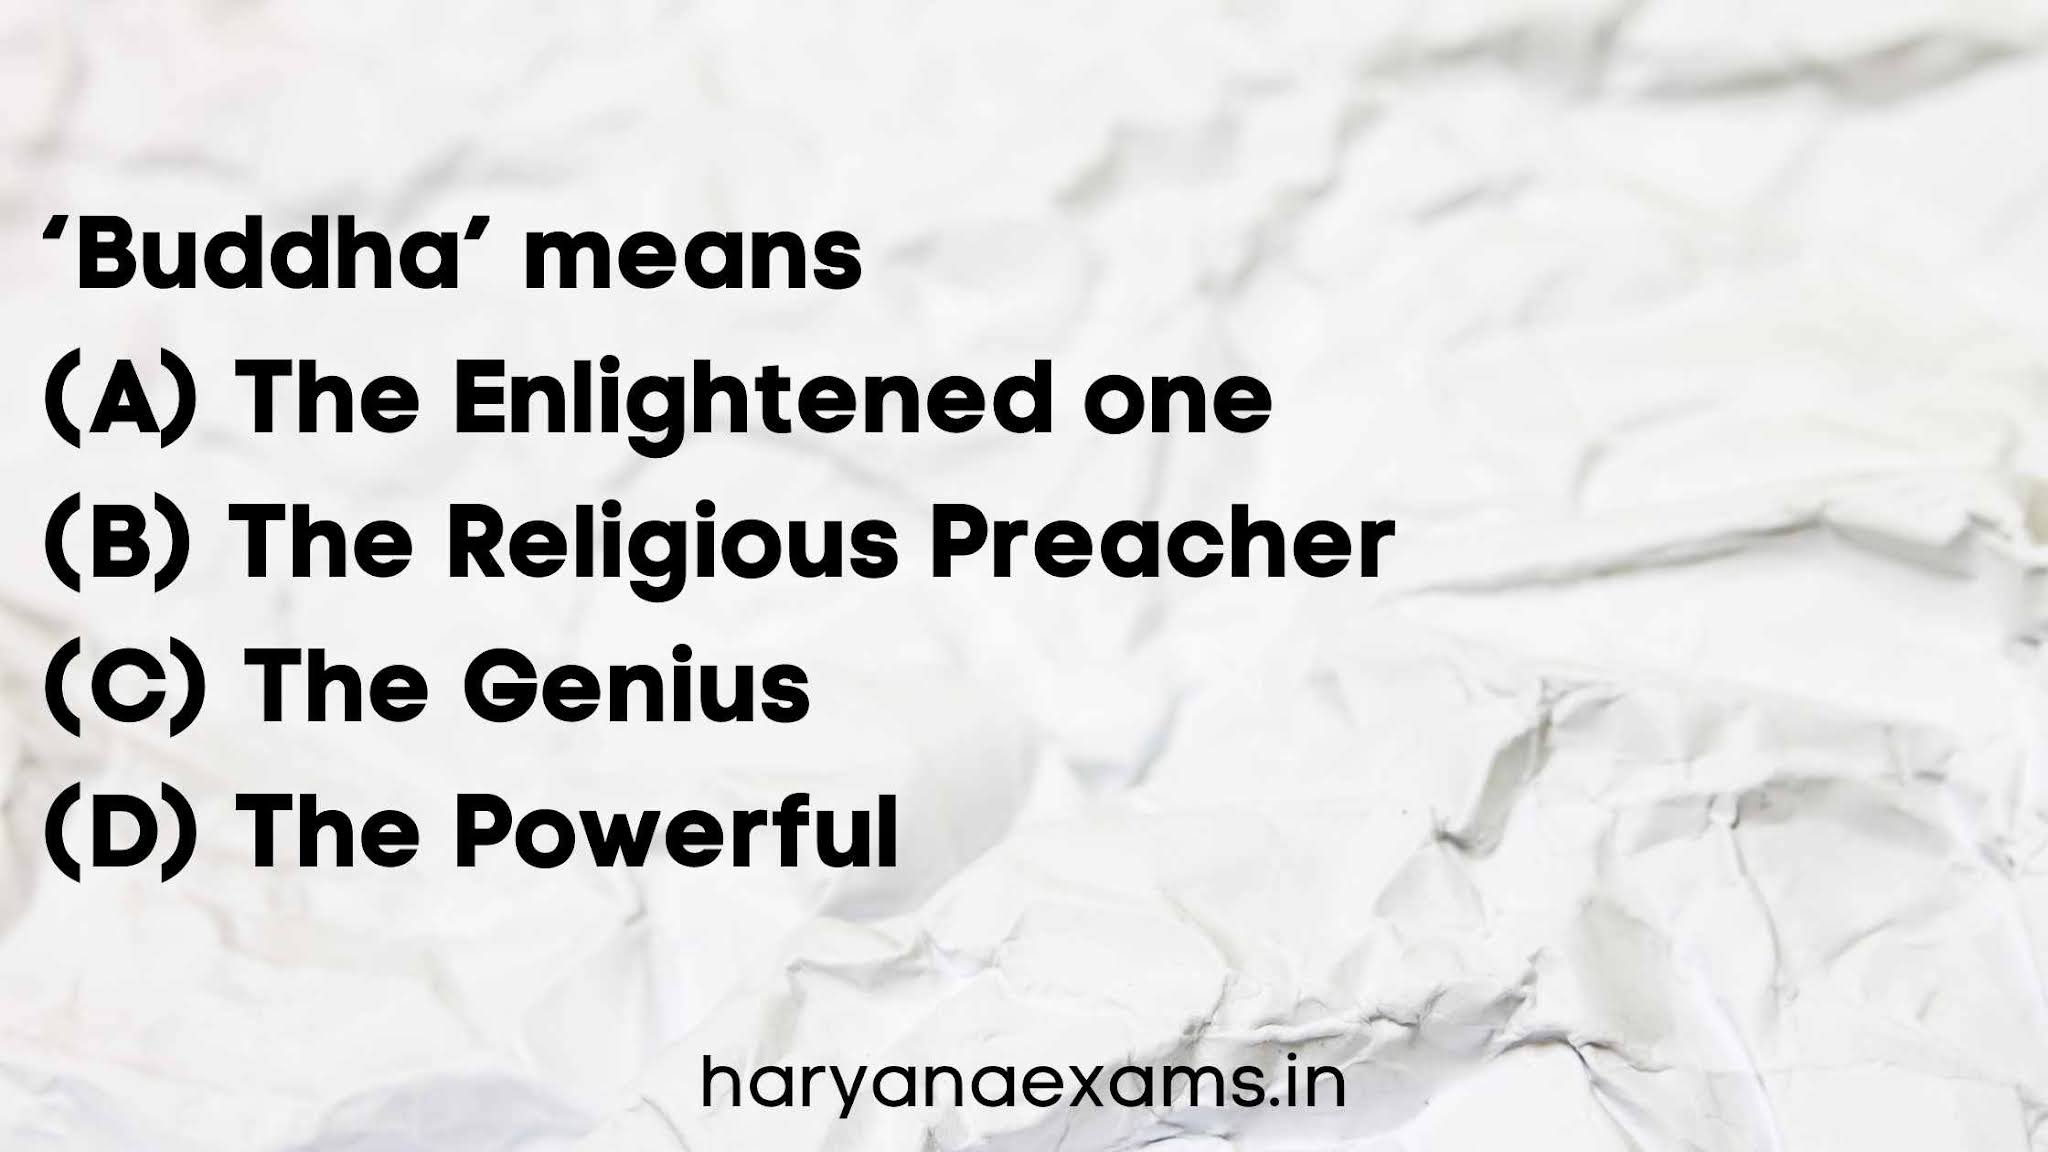 'Buddha' means   (A) The Enlightened one   (B) The Religious Preacher   (C) The Genius   (D) The Powerful